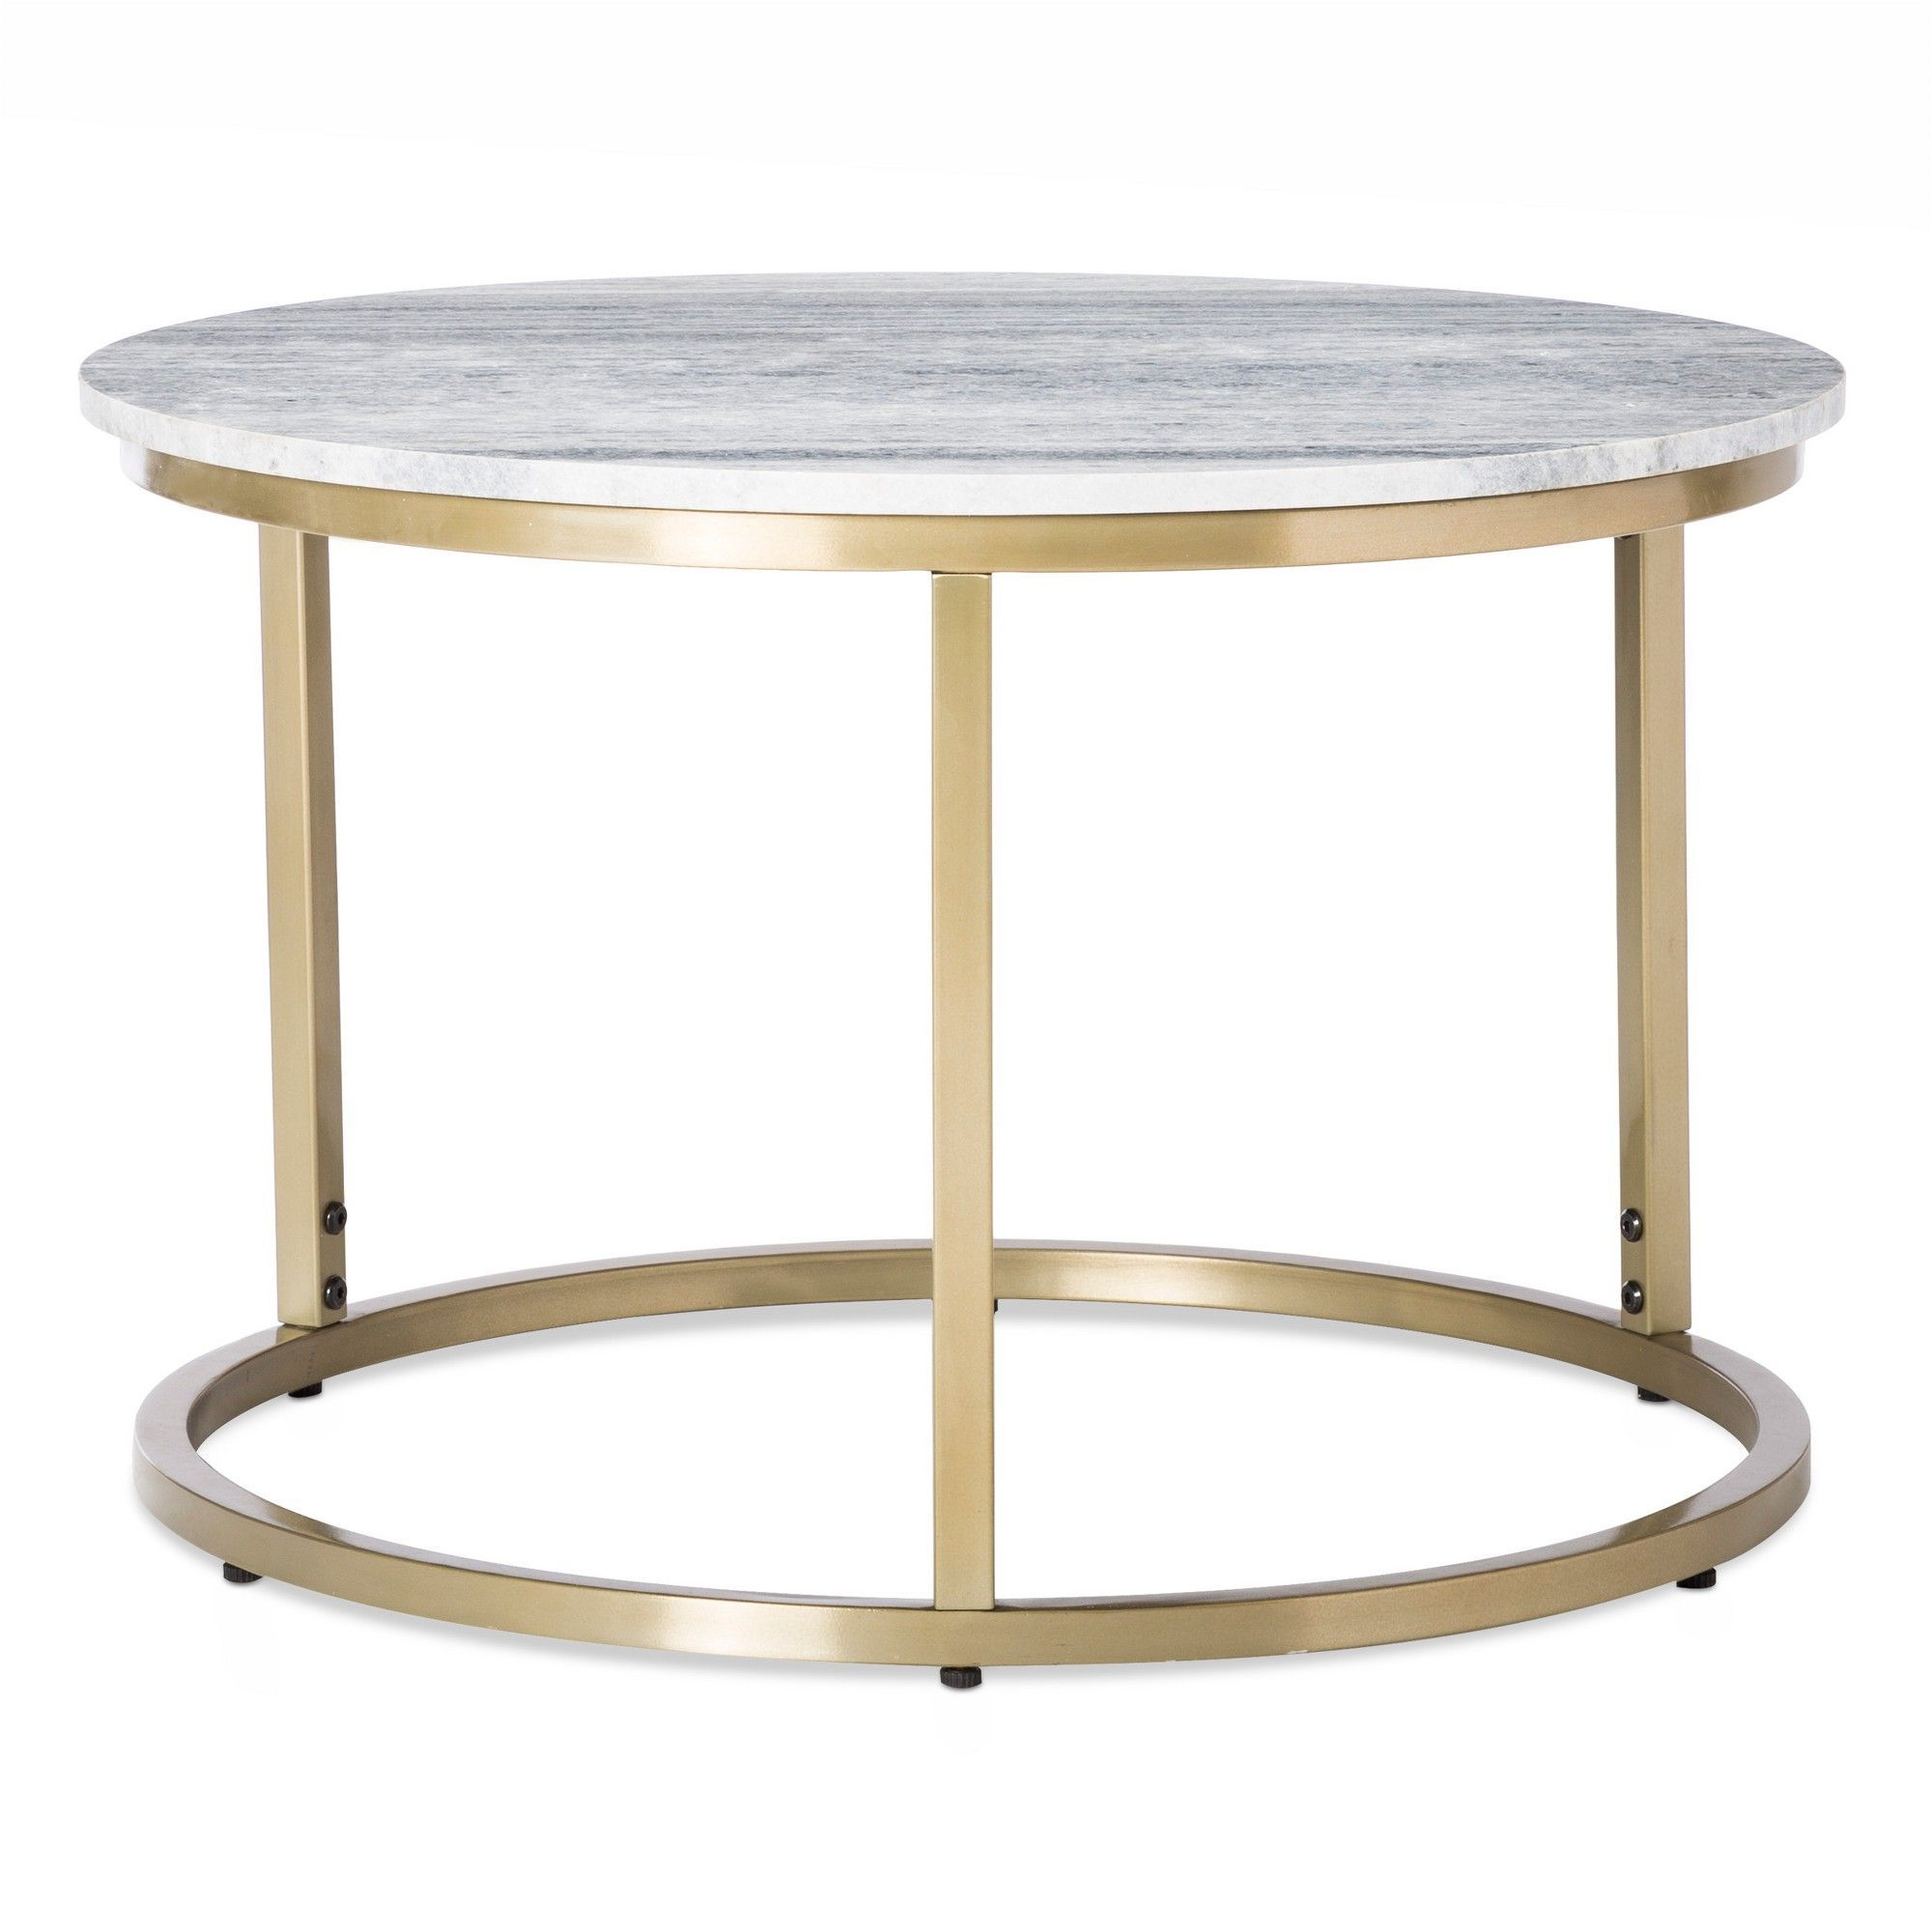 small marble top coffee table gold threshold products nate berkus round accent with wide wood target queen frame ashley furniture bunk beds for entry foyer black umbrella base